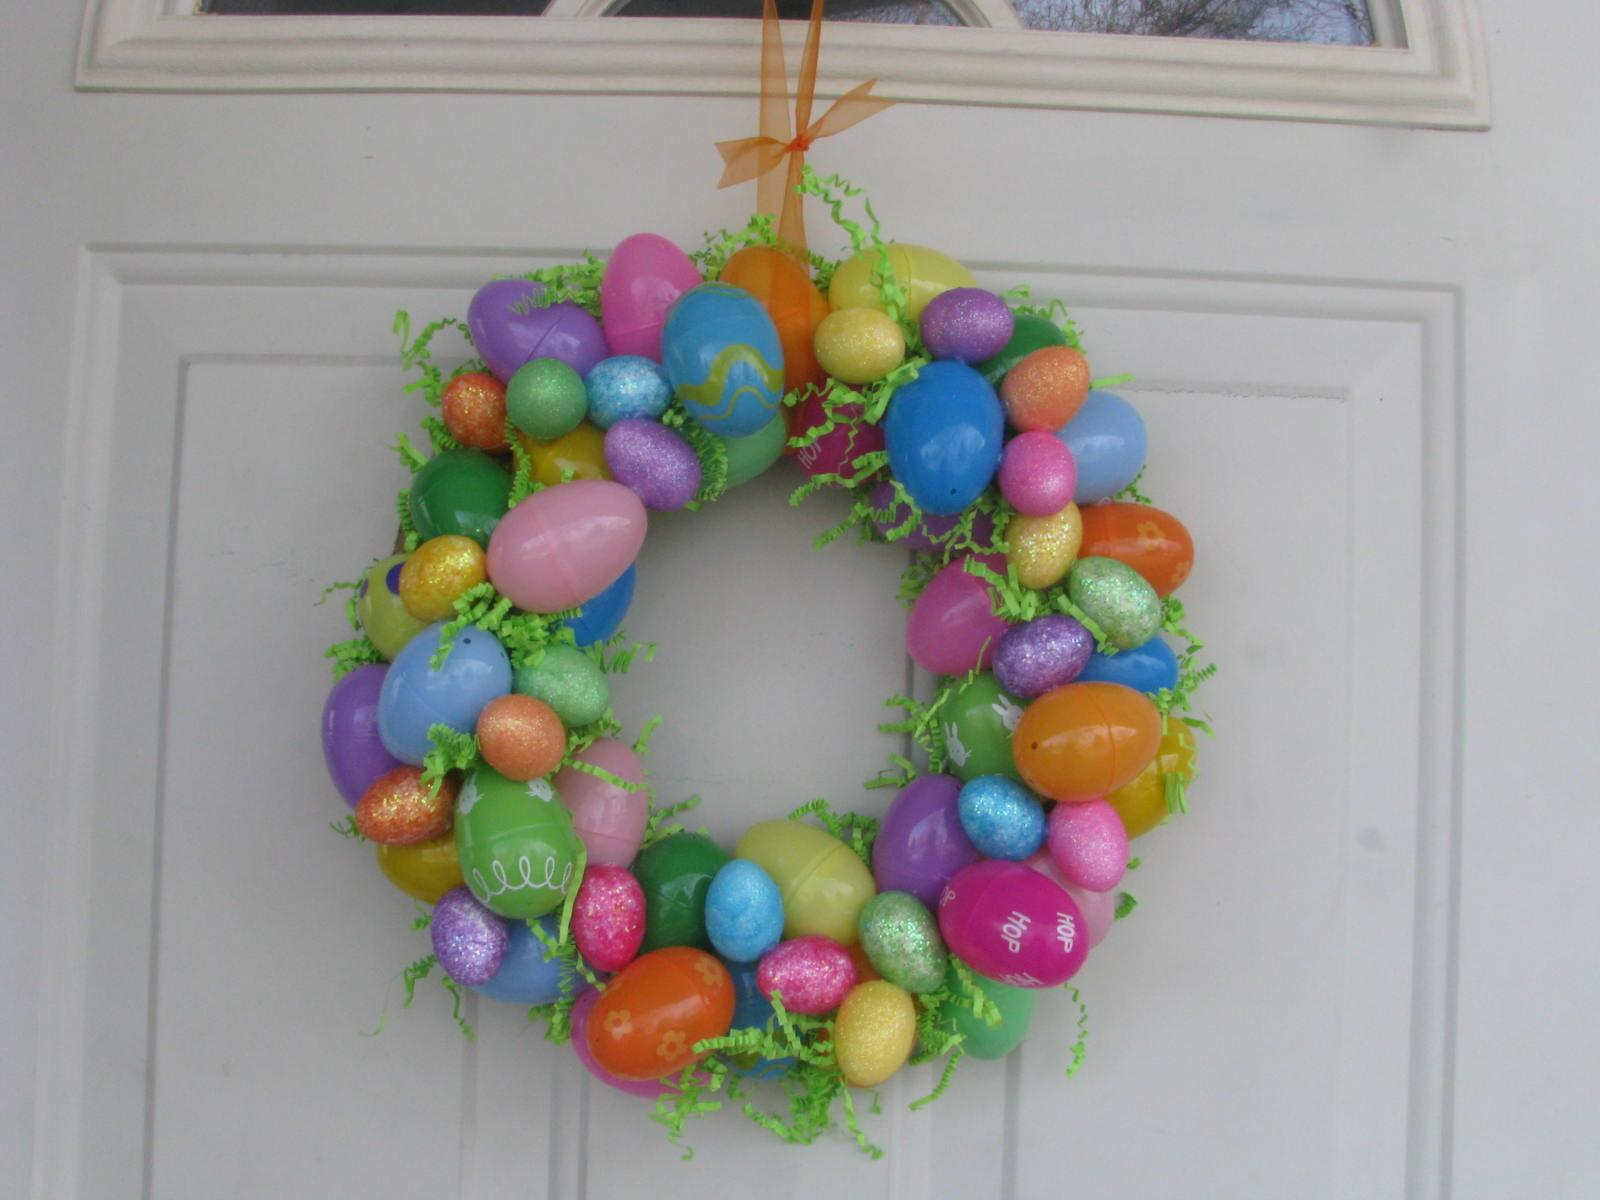 Collard Greens Homemade Things Easter Egg Wreath